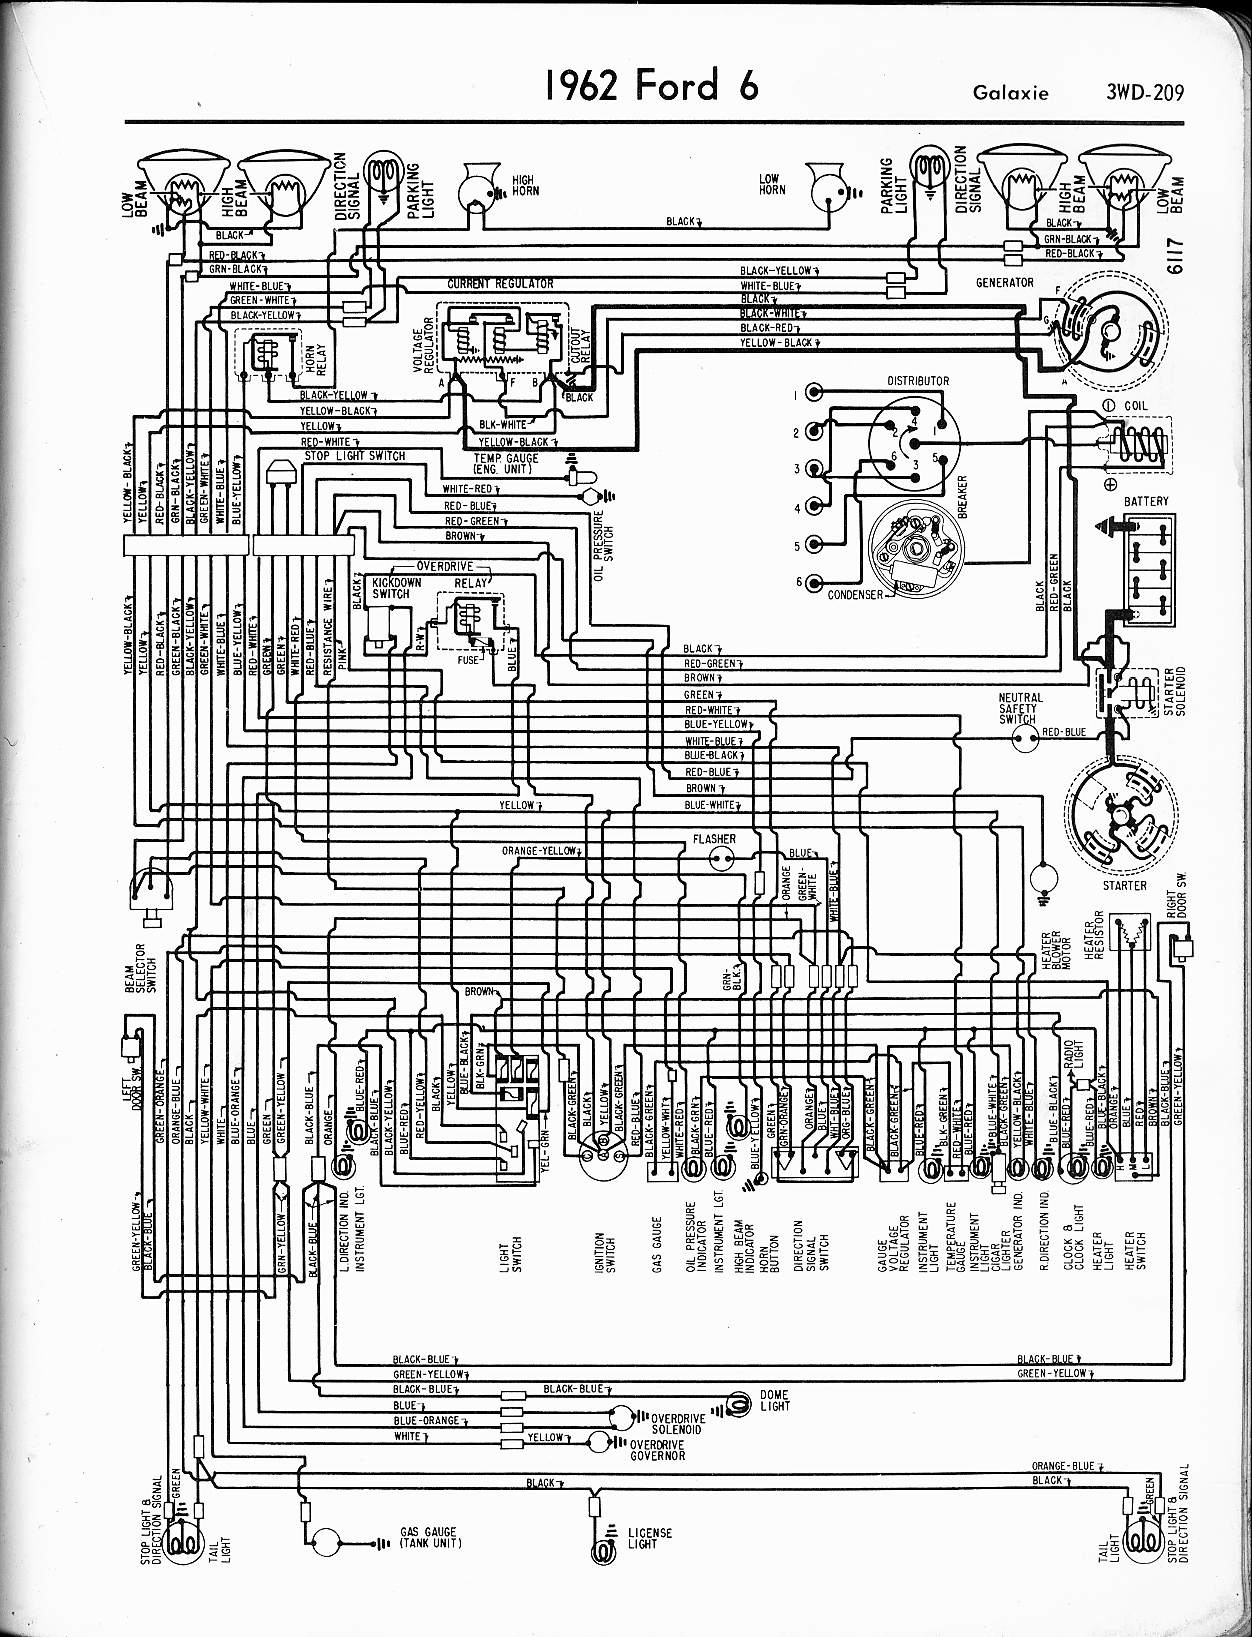 1962 Galaxie Wiring Diagram Another Blog About 2015 Silverado X61a Diagrams Only 57 65 Ford Rh Oldcarmanualproject Com